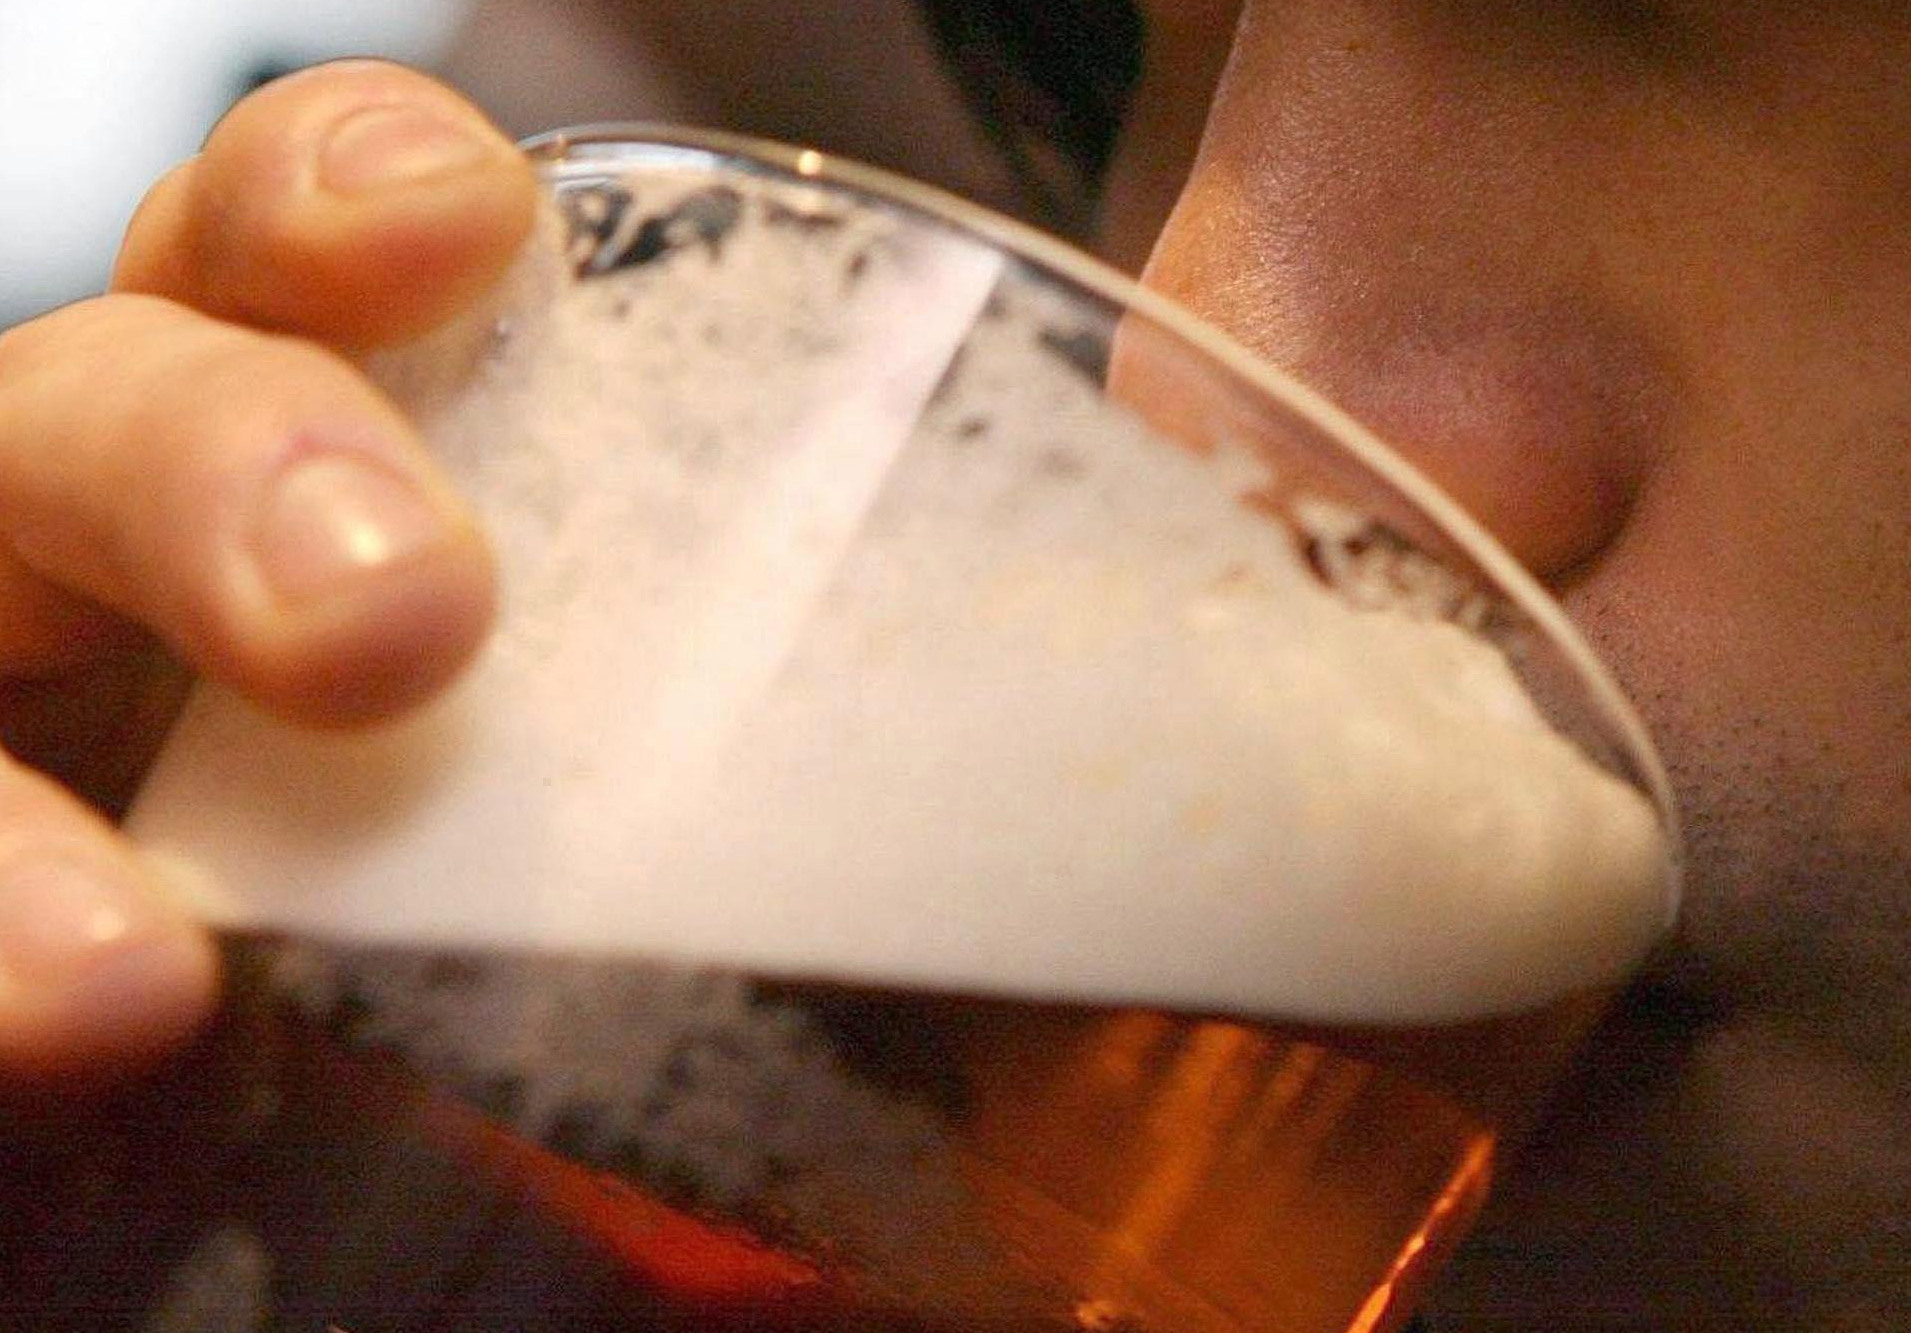 Young people under 18 warned they could face prosecution for using fake or borrowed identity documents to buy alcohol